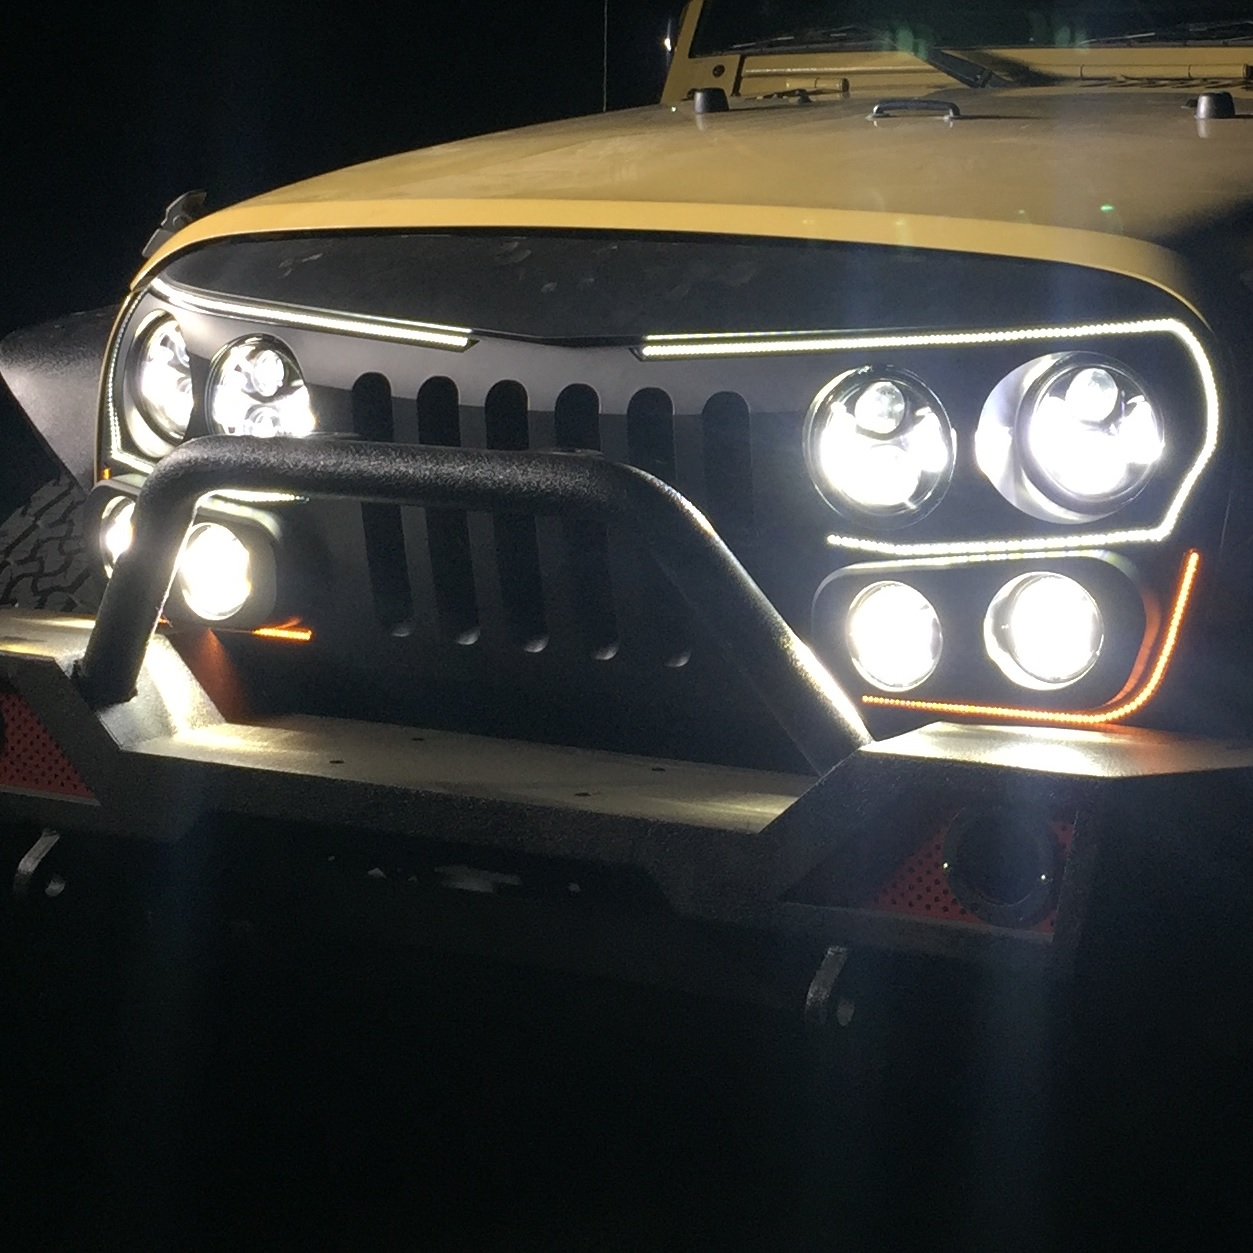 nox-lux-kinetic-dynamic-drl-jeep-jk-led-grille-kit